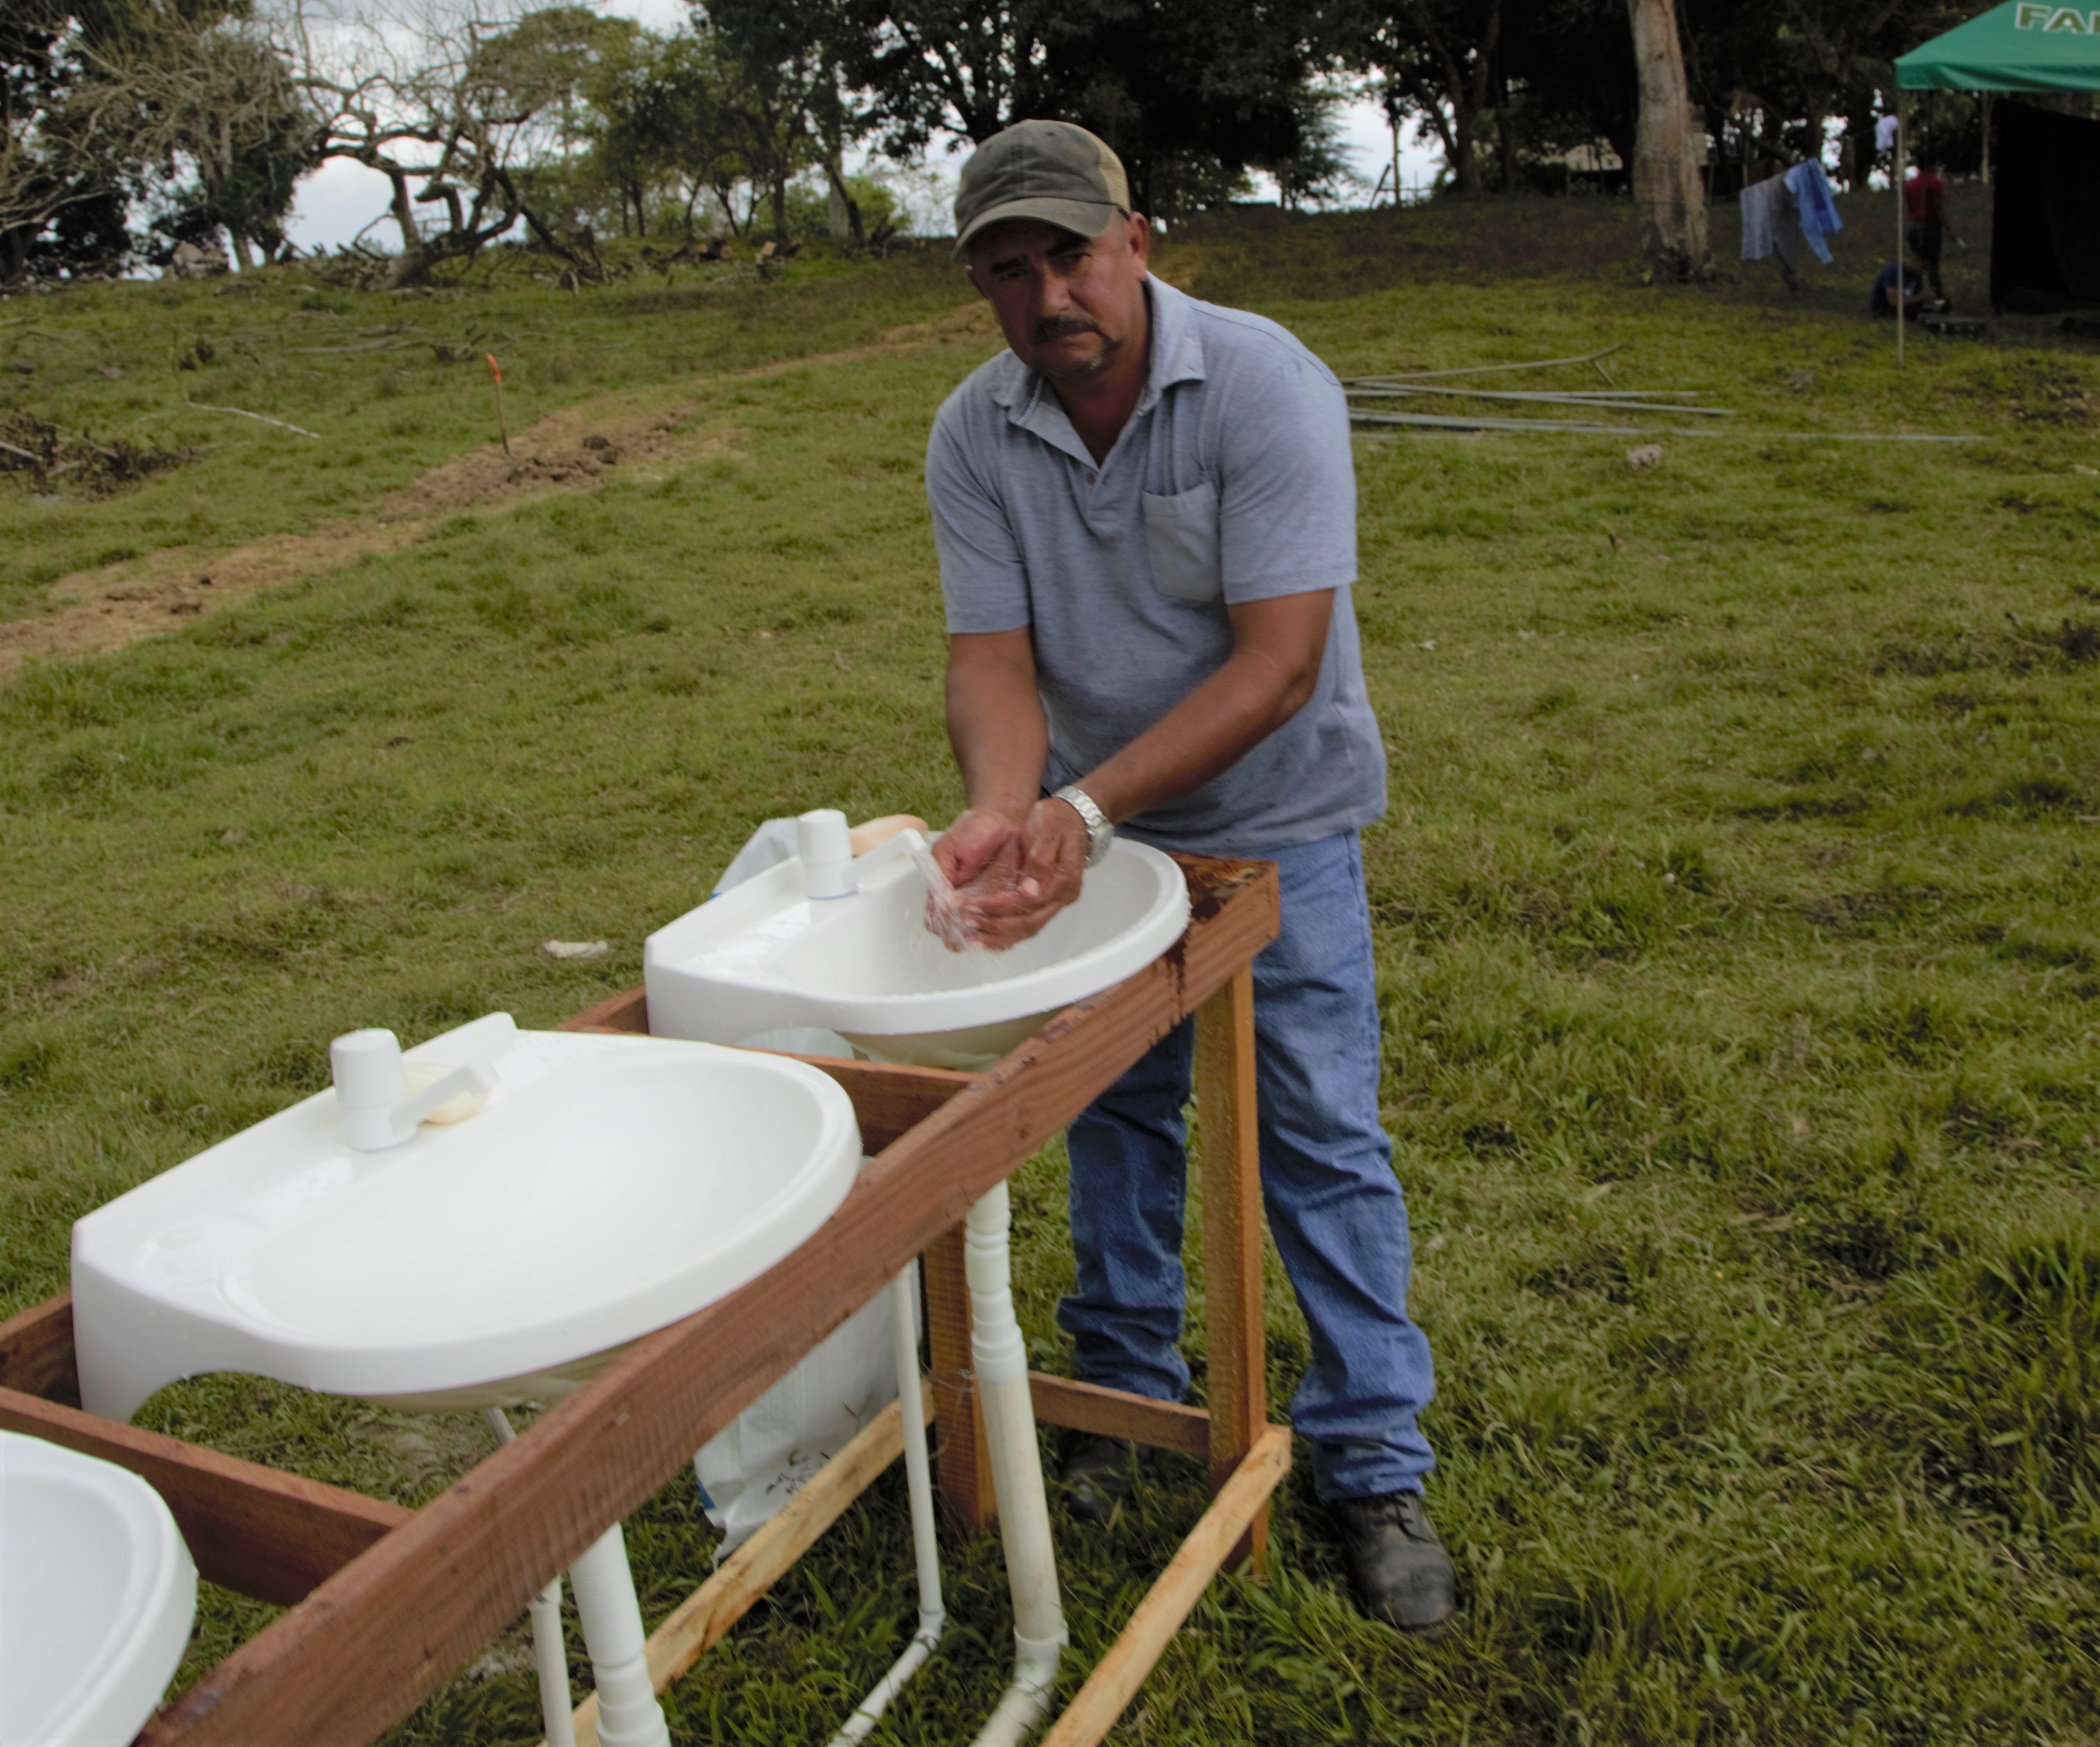 A pop up handwashing station in Nicaragua